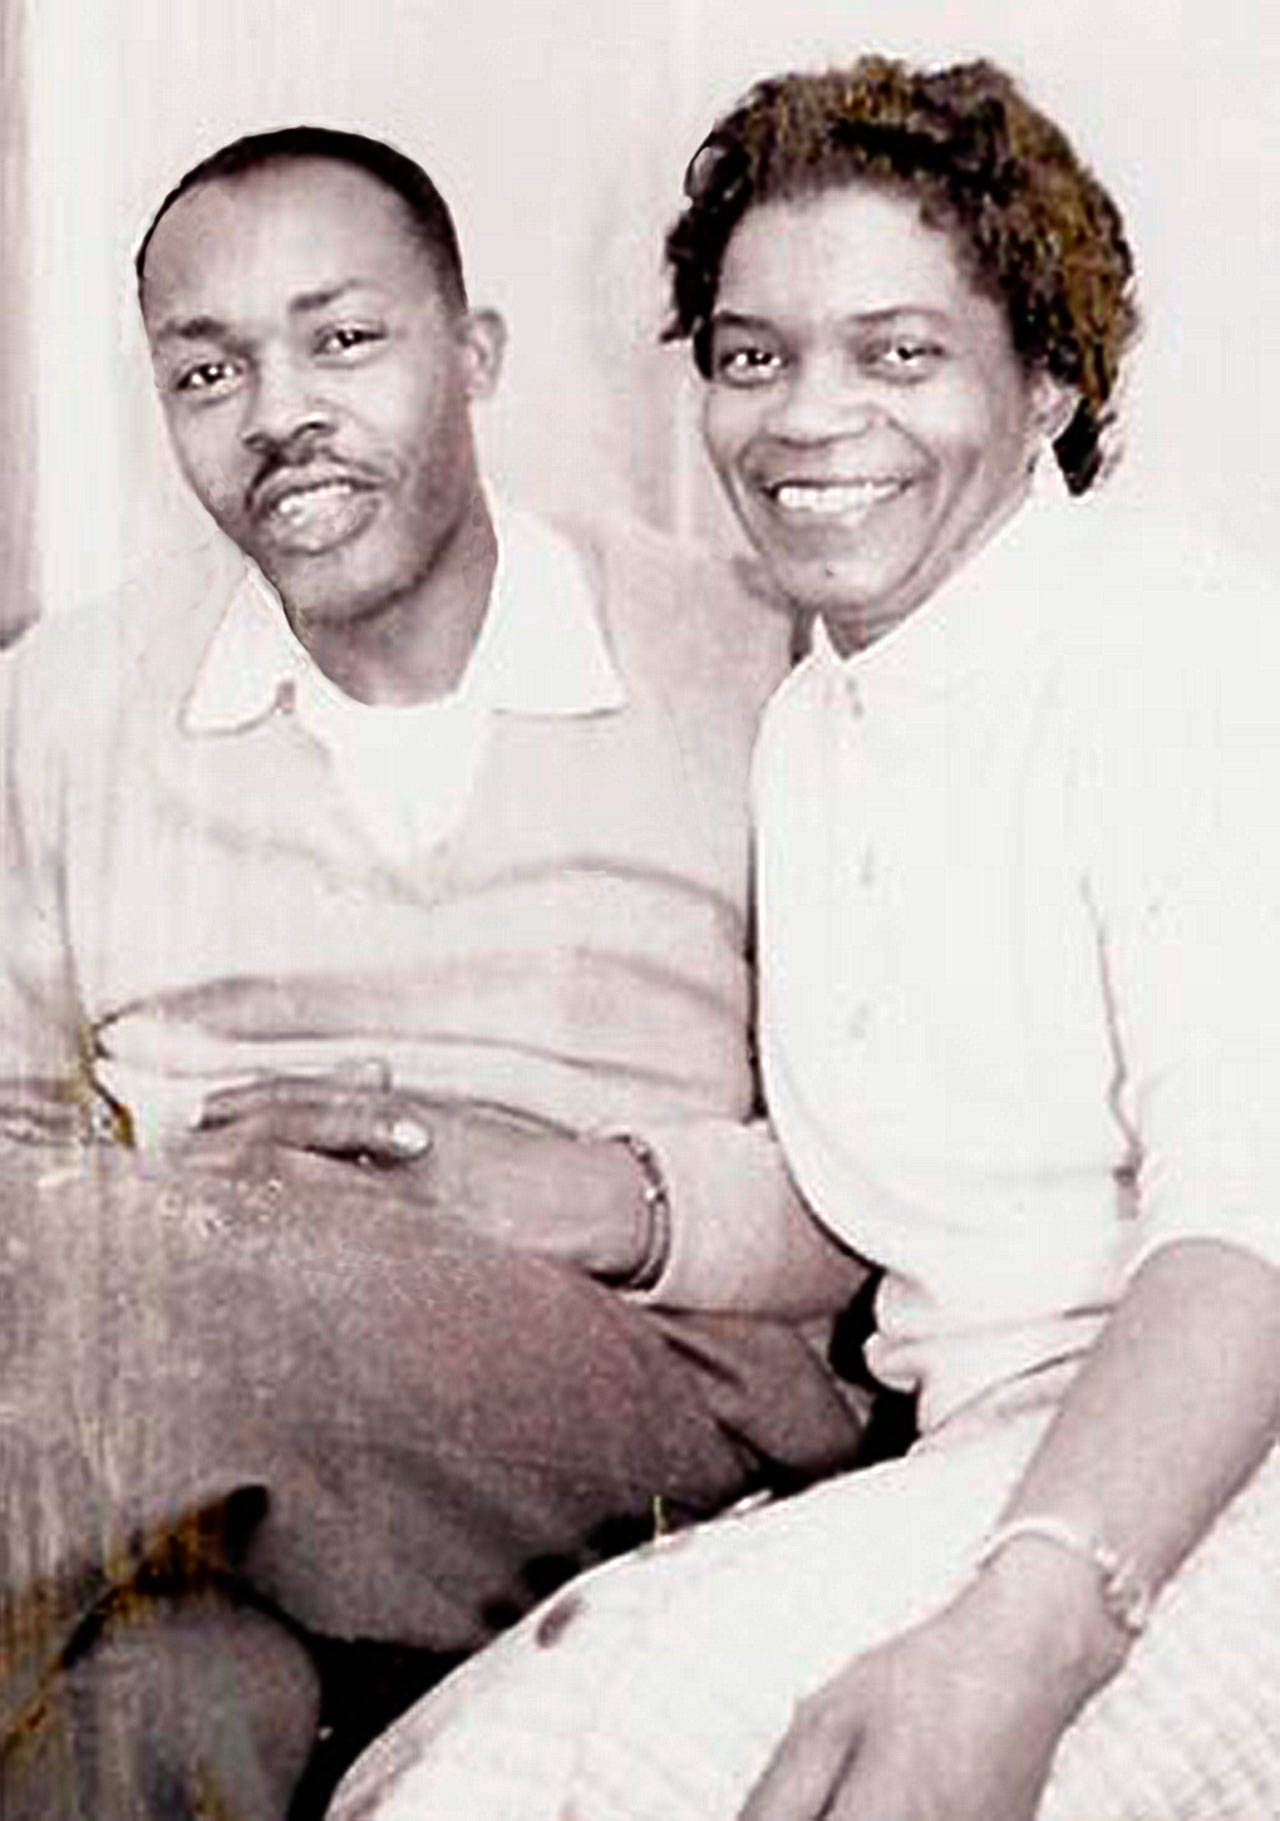 Carl Gipson and his wife Jodie encountered discrimination during their early years in Everett. Carl went on to serve nearly 25 years on the Everett City Council. (Courtesy Live in Everett)